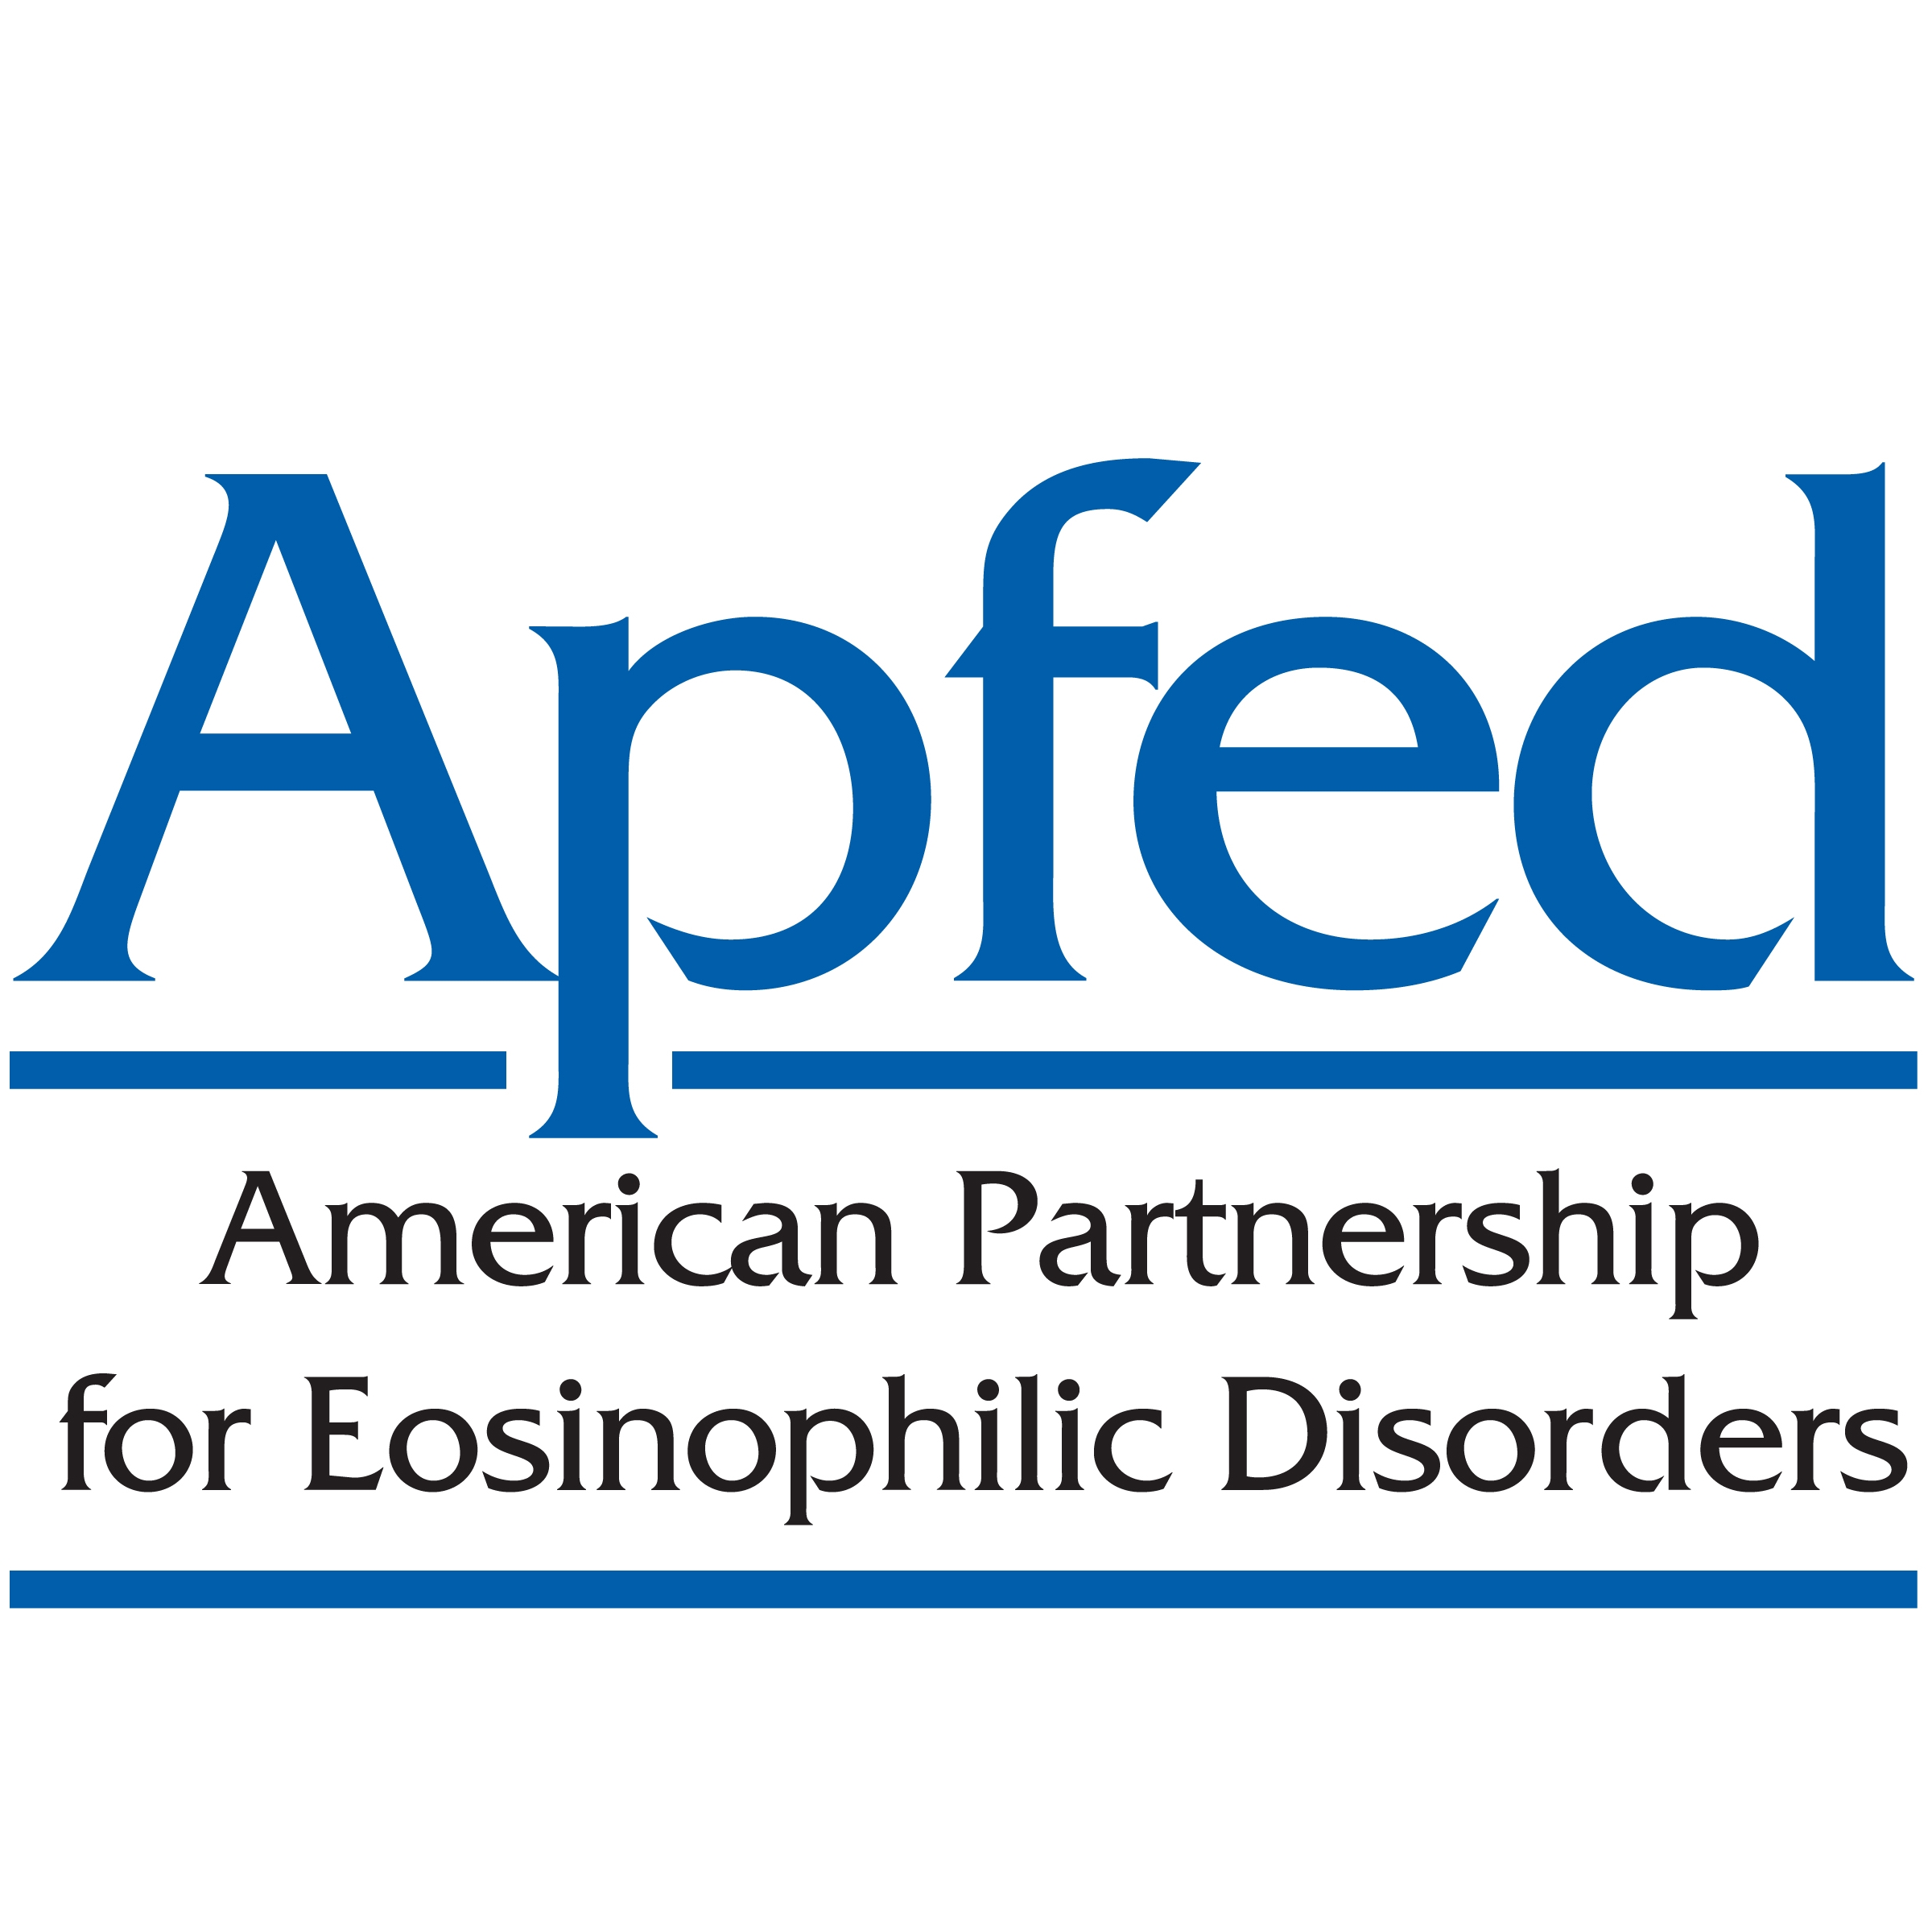 American Partnership for Eosinophilic Disoders